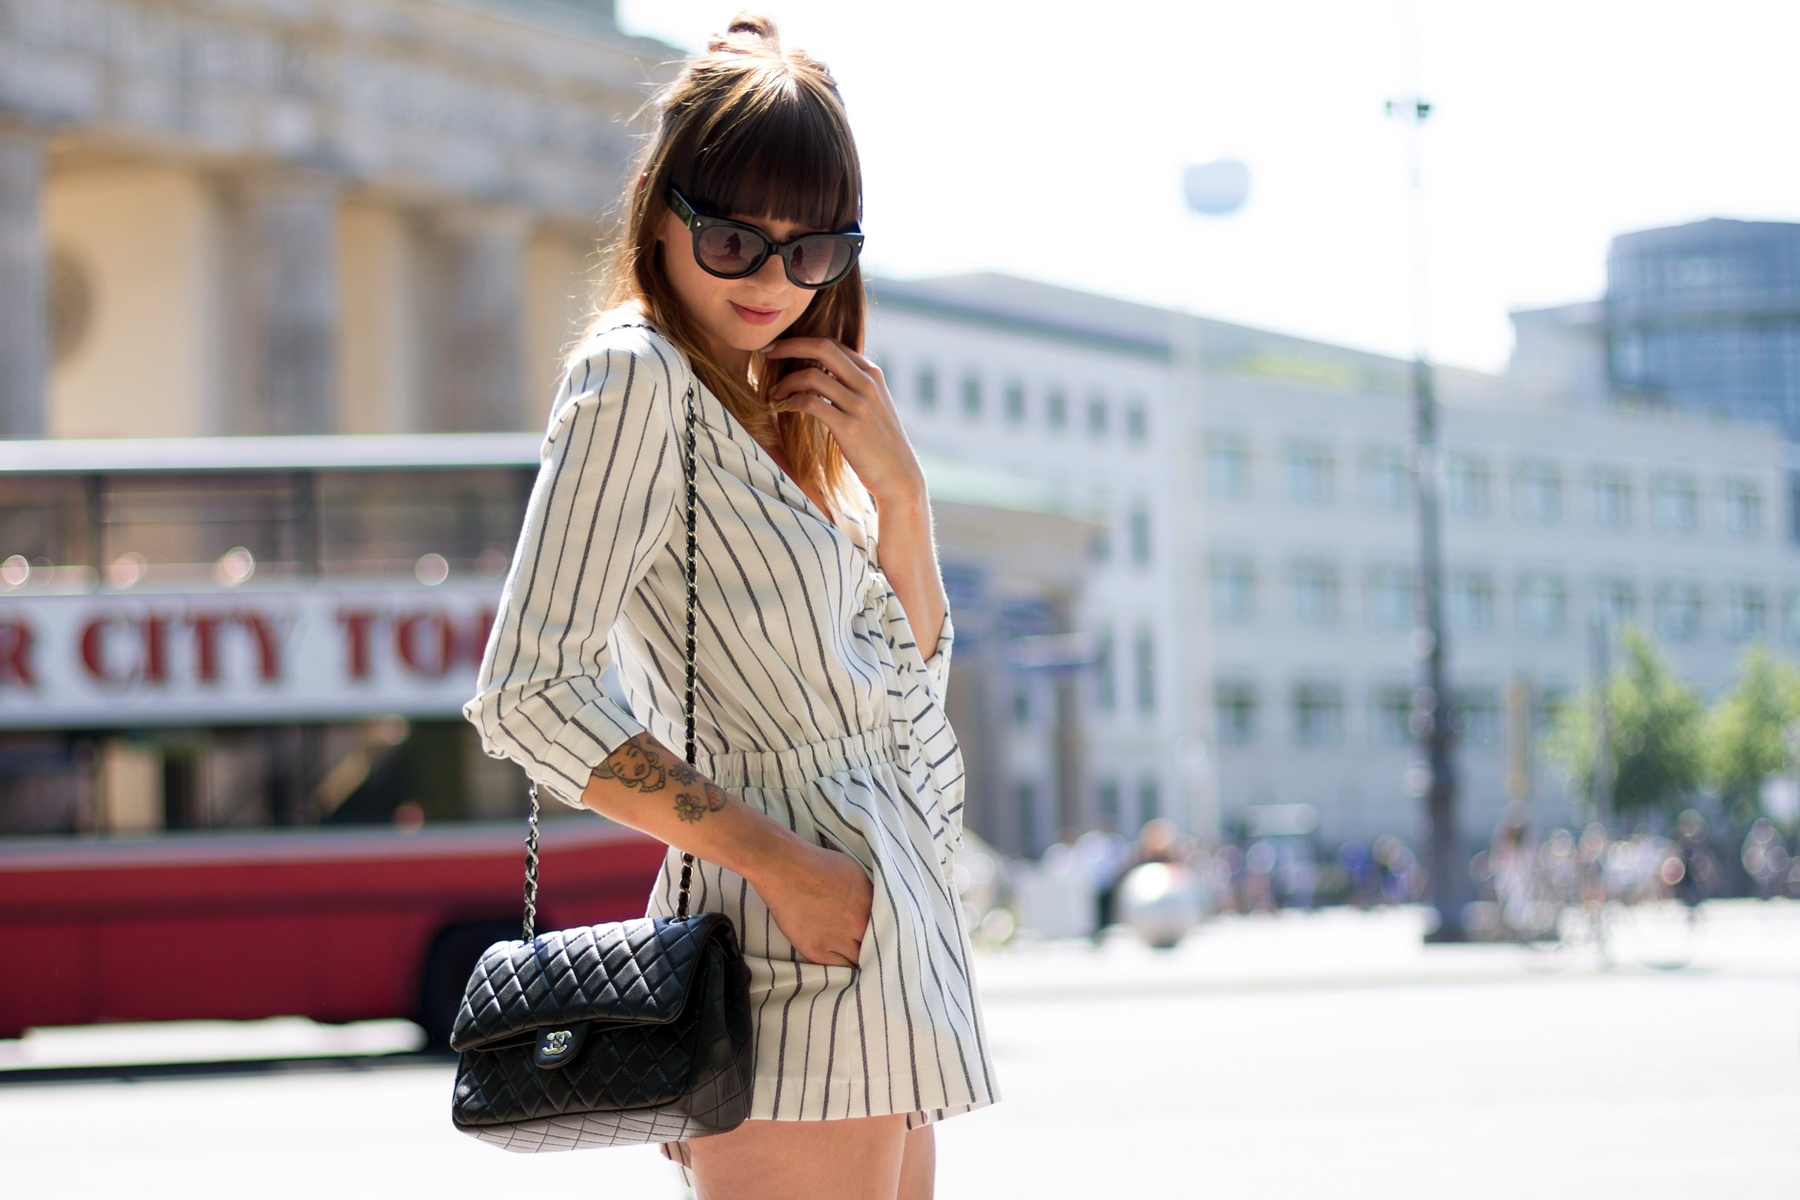 h&m trend white blue striped jumpsuit overall chanel double flap 2.55 birkenstock arizona prada sunglasses berlin fashion week cats & dogs ricarda schernus 7